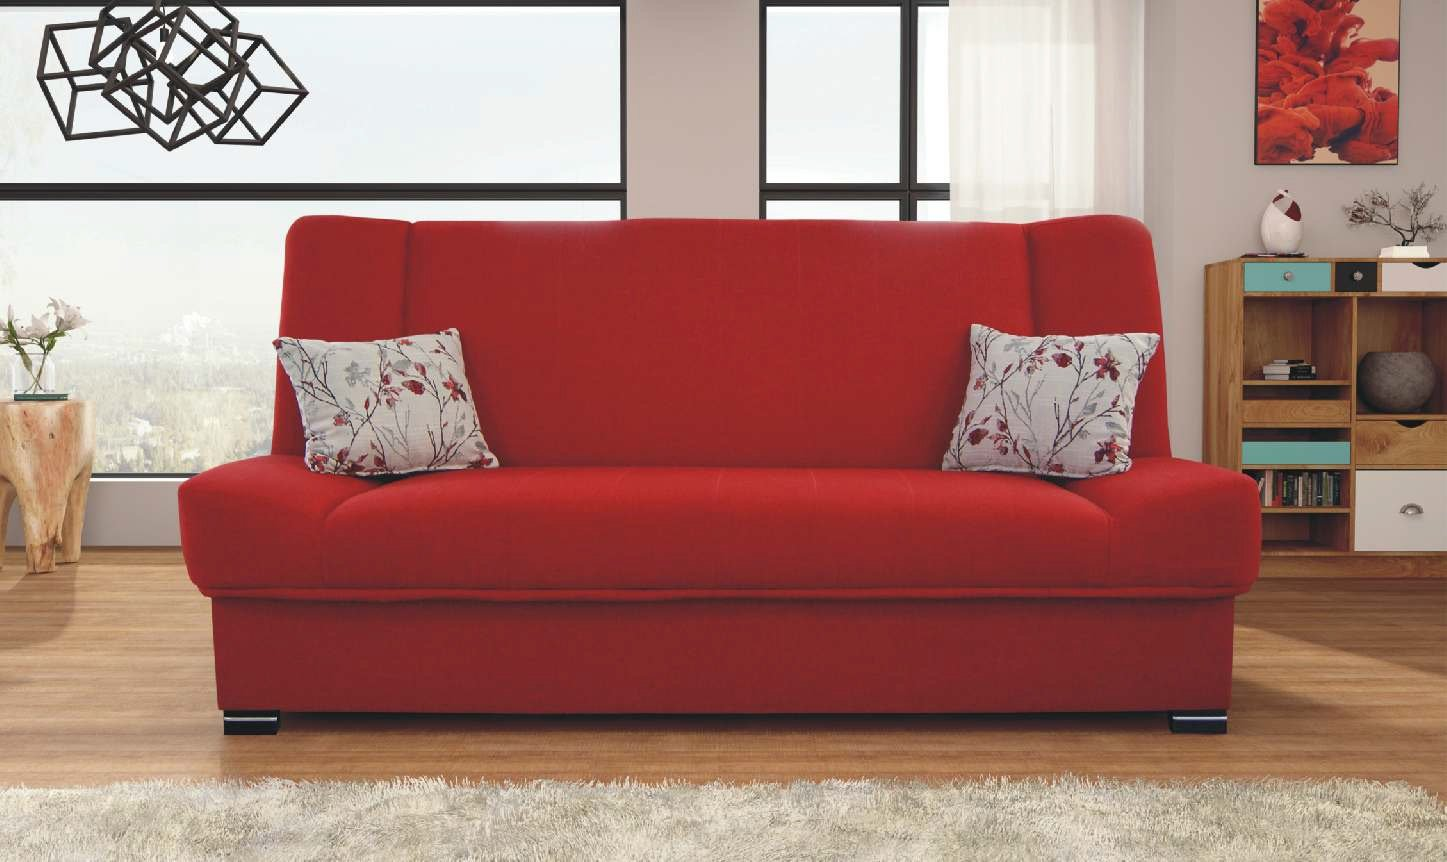 Natalia red sofa sleeper by skyler designs Red sofa ideas